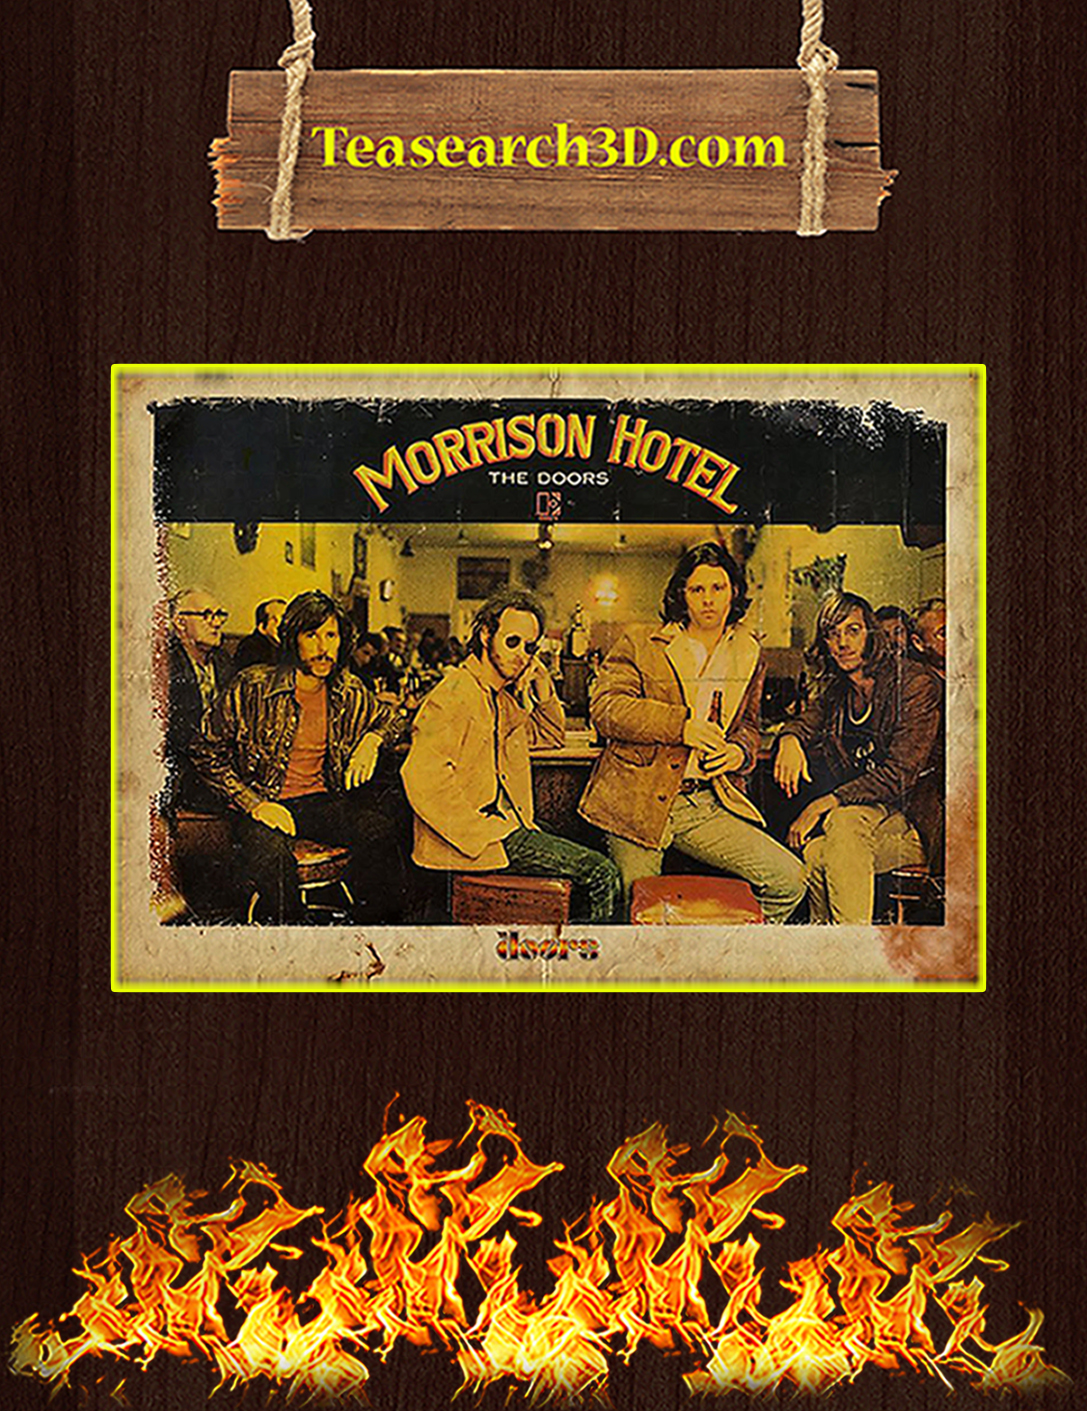 Morrison hotel the doors poster A2